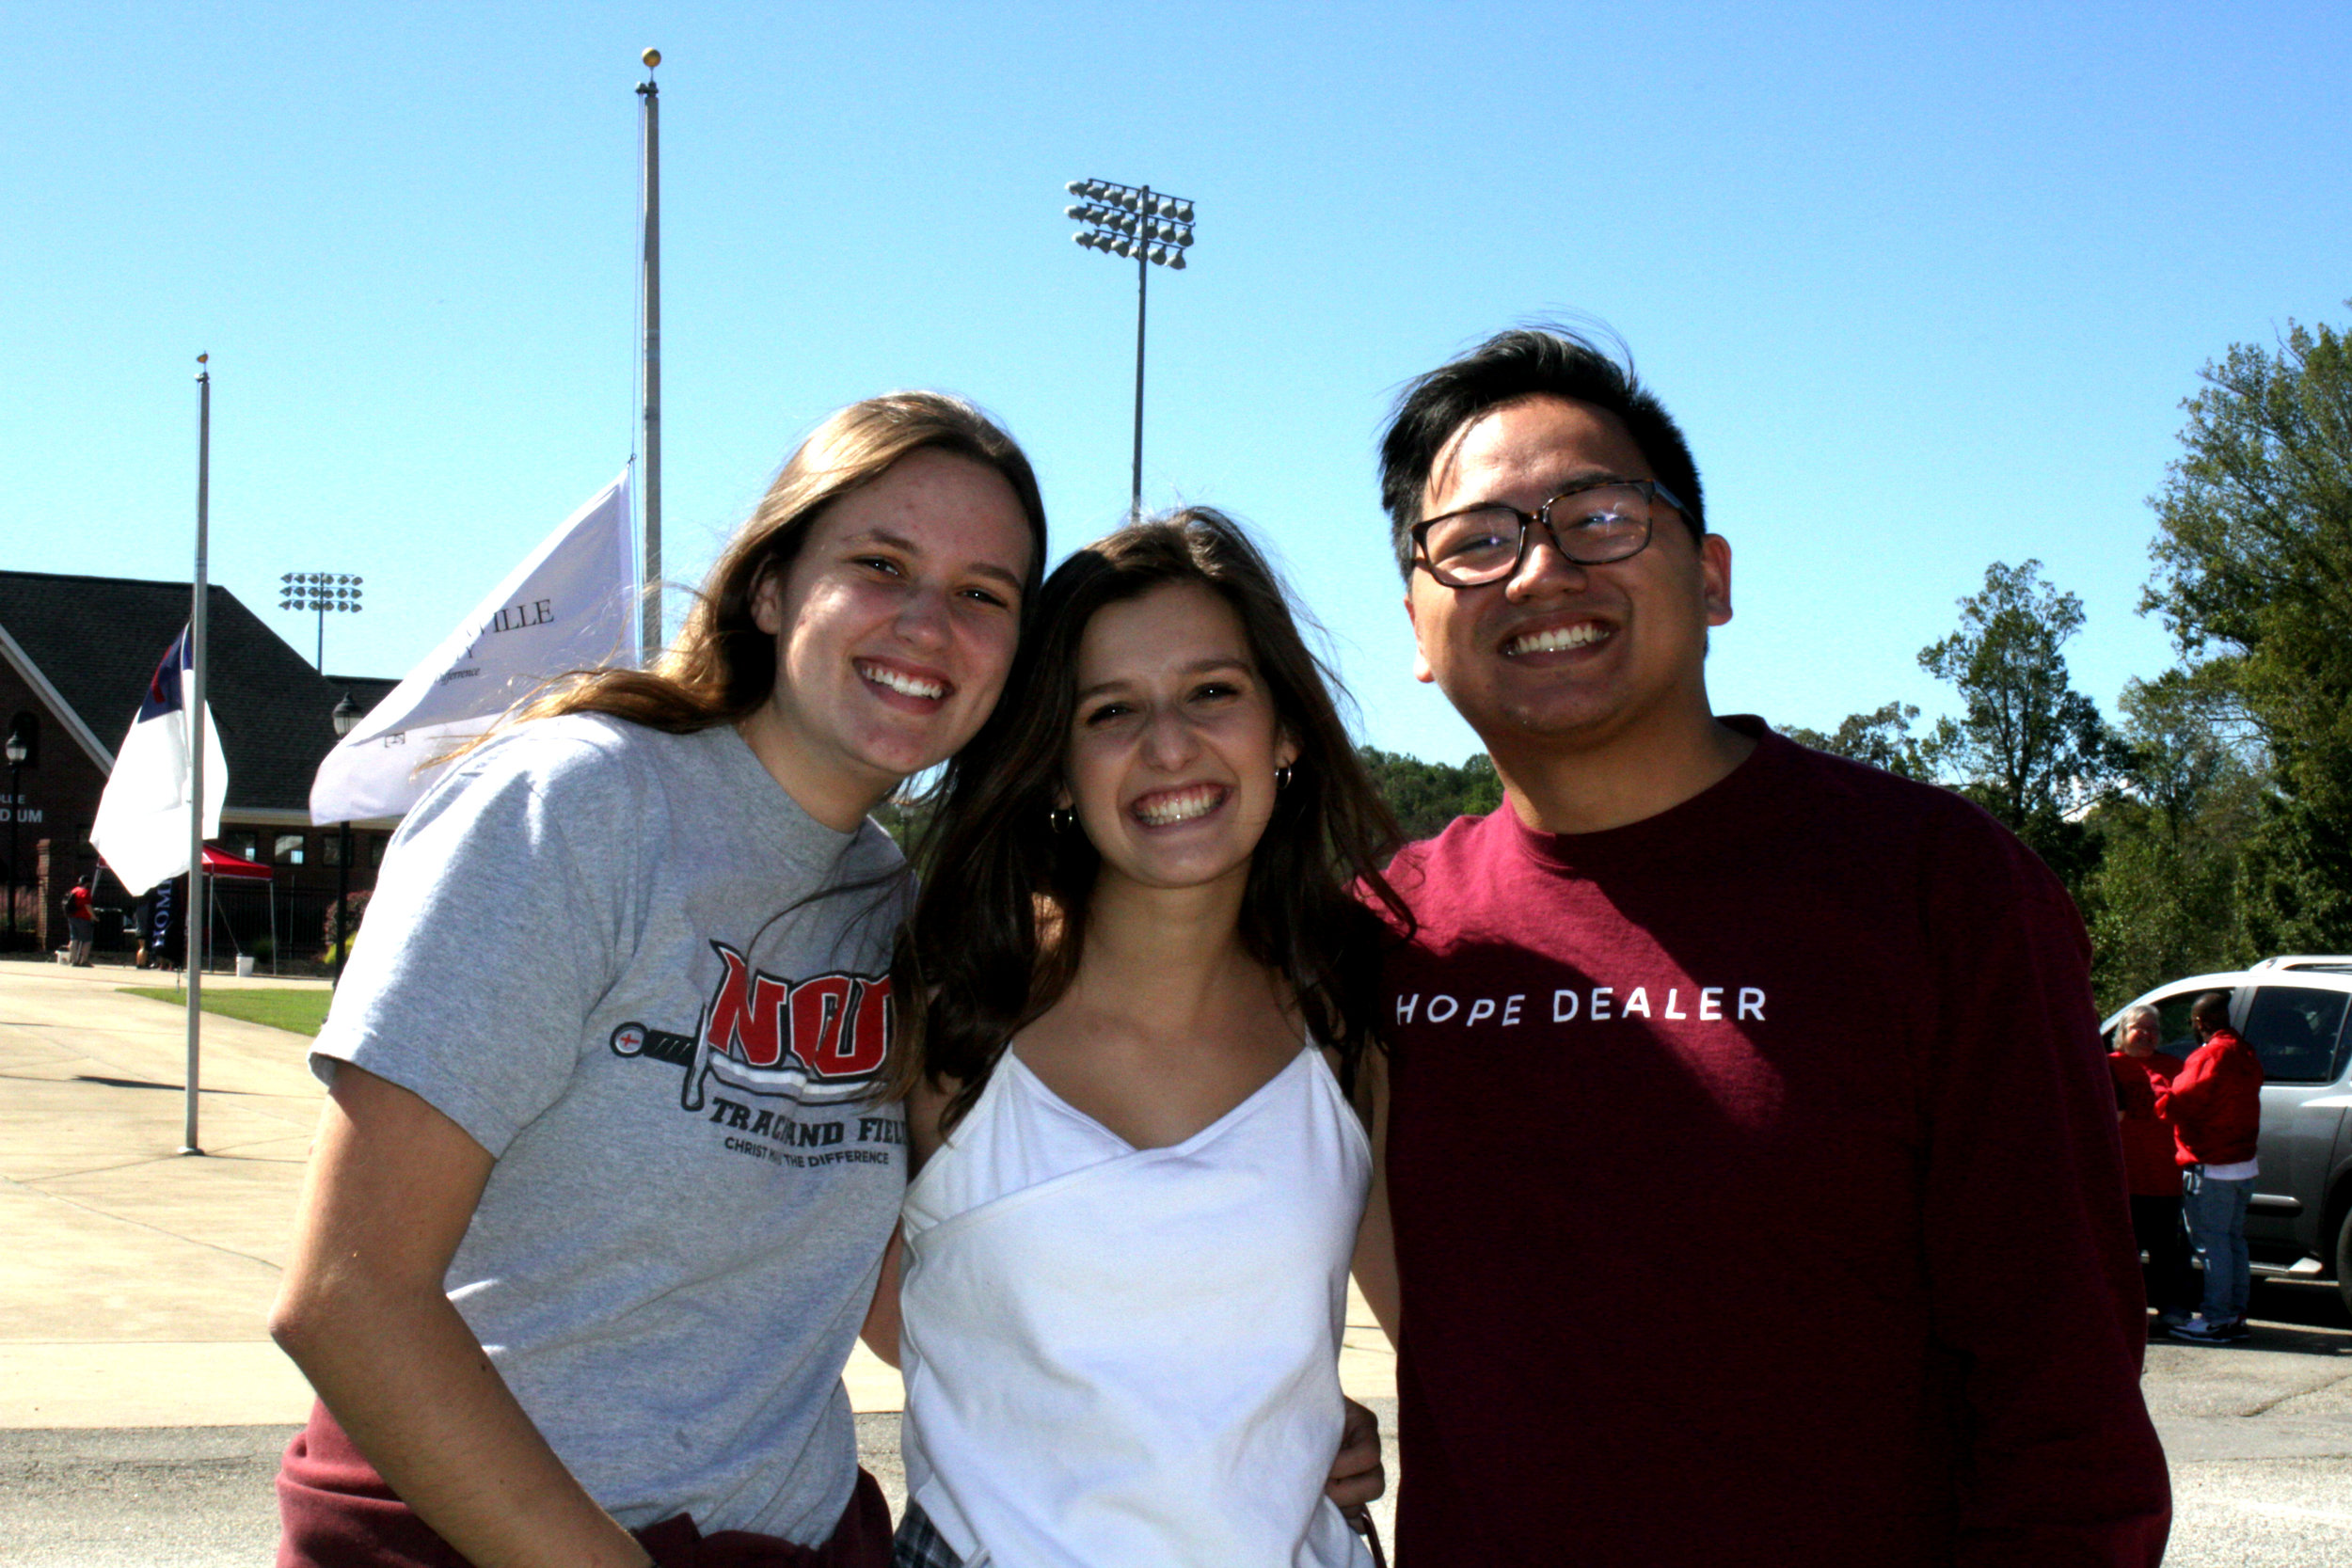 From left to right, students Caroline Smith (Sophomore), Abbey Blackwood (Senior) and Kieffer Mendoza (Alumni) enjoy the tailgate as they wait for the parade to start.